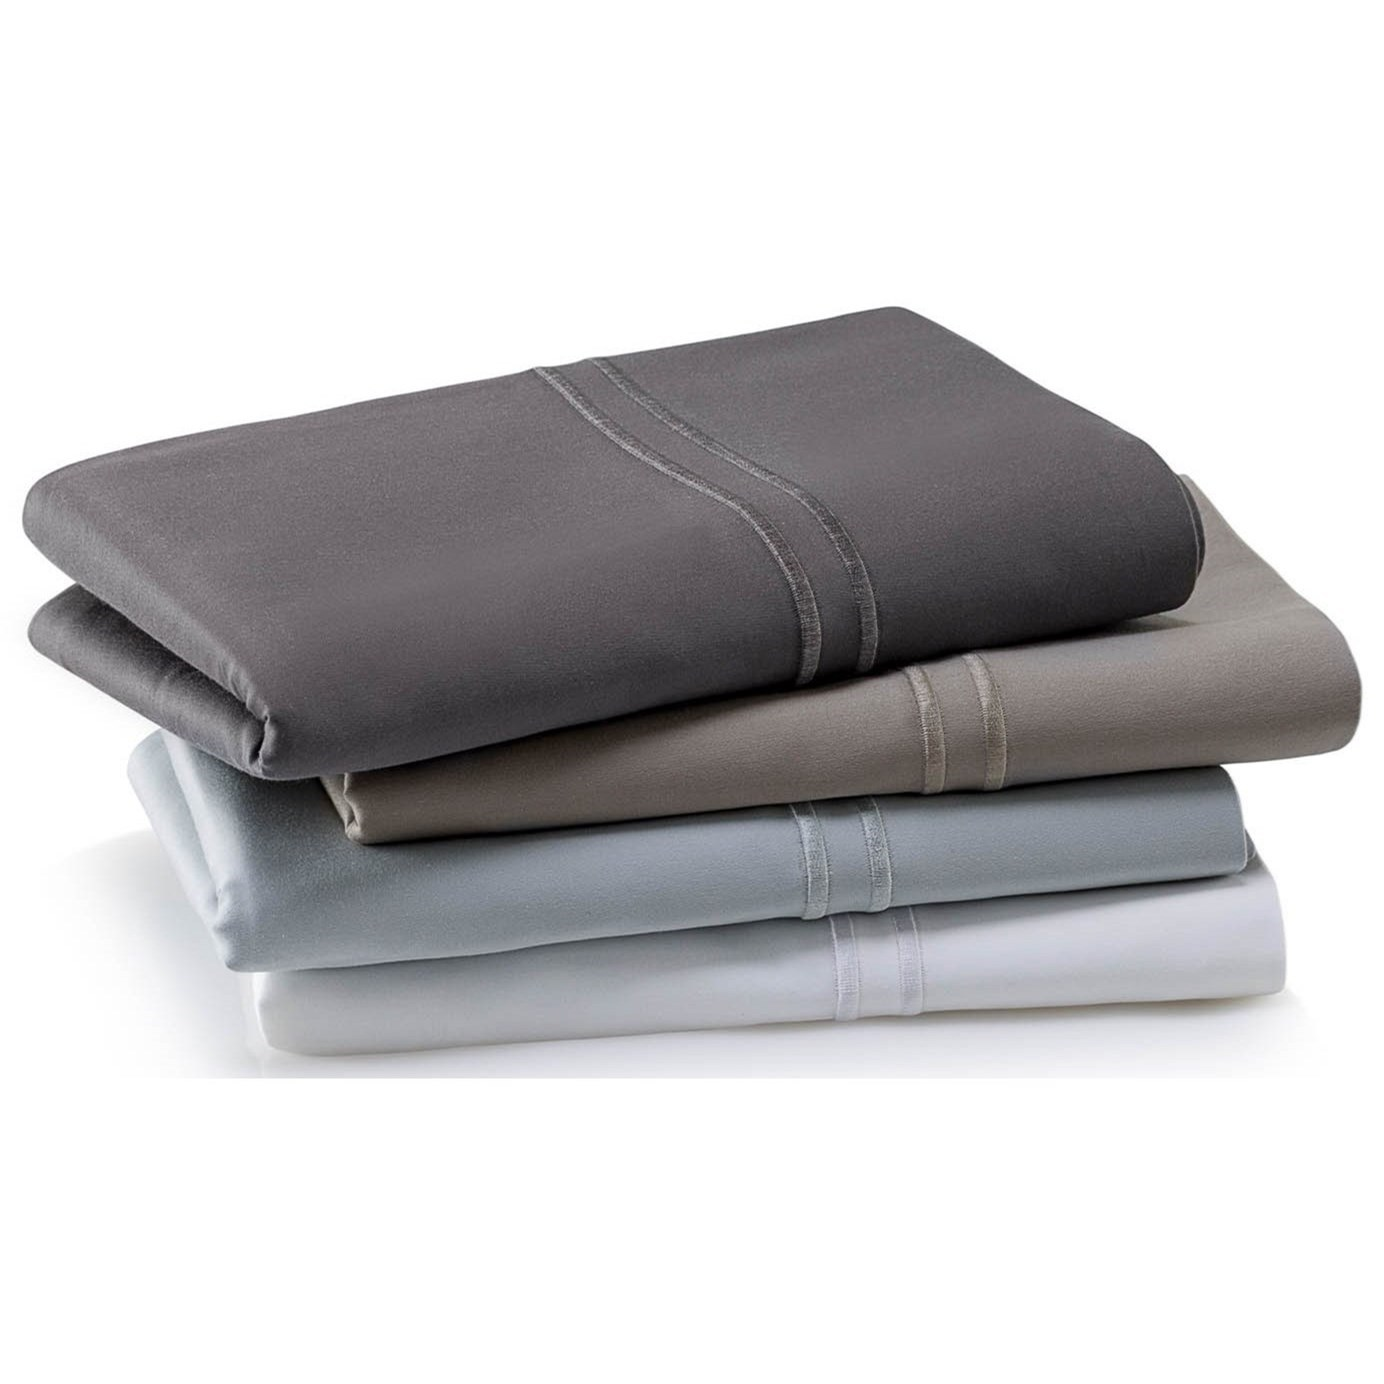 Supima Cotton Supima Cotton Sheets Split King by Malouf at Home Collections Furniture